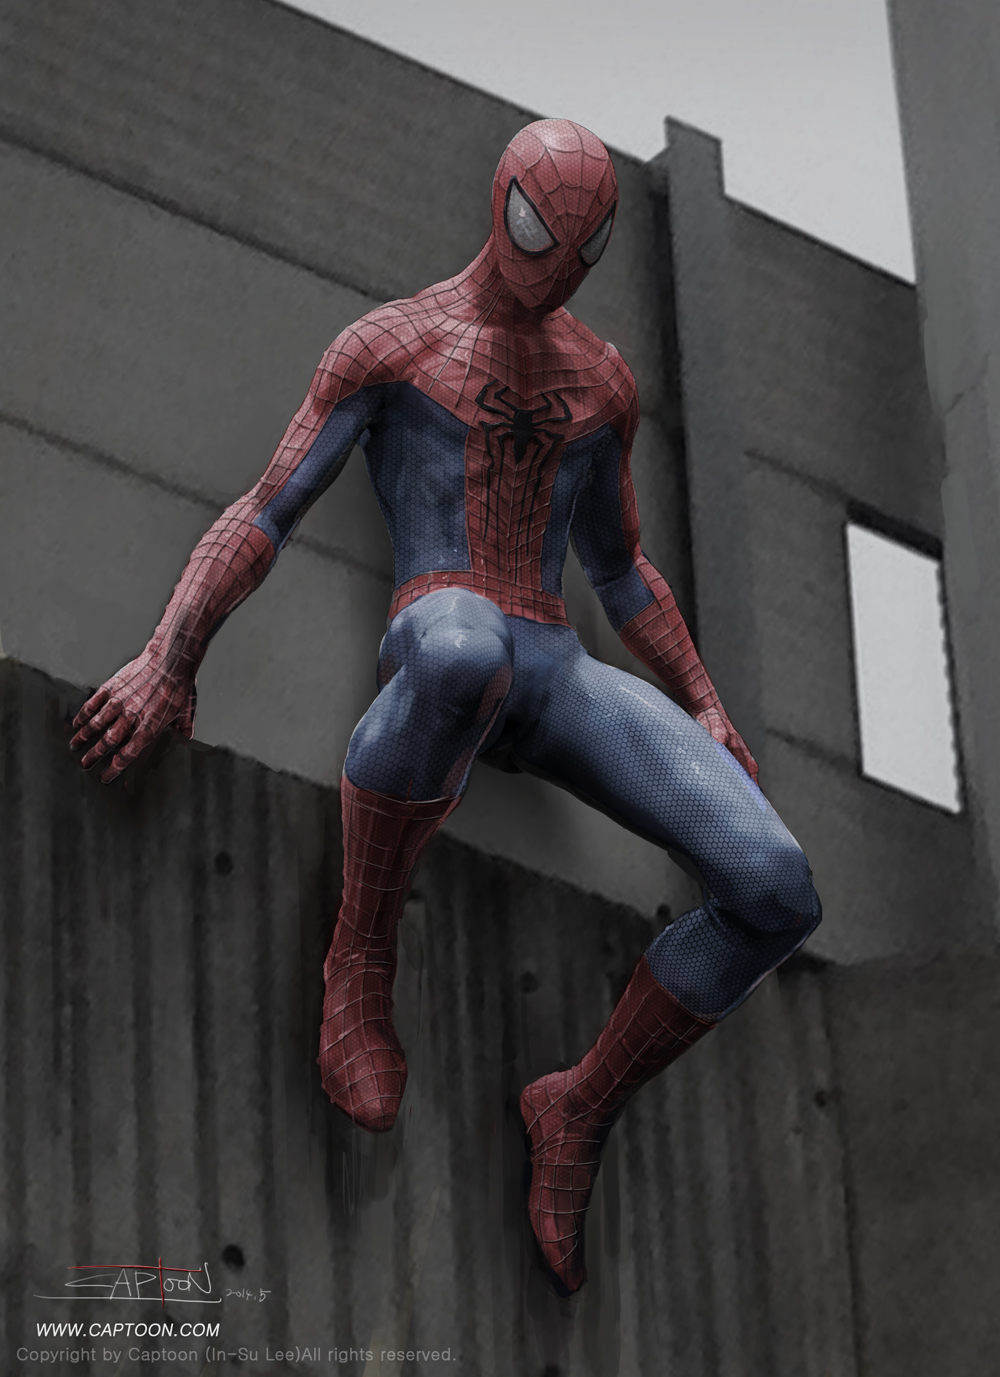 spiderman-captoon-20140526-resize3